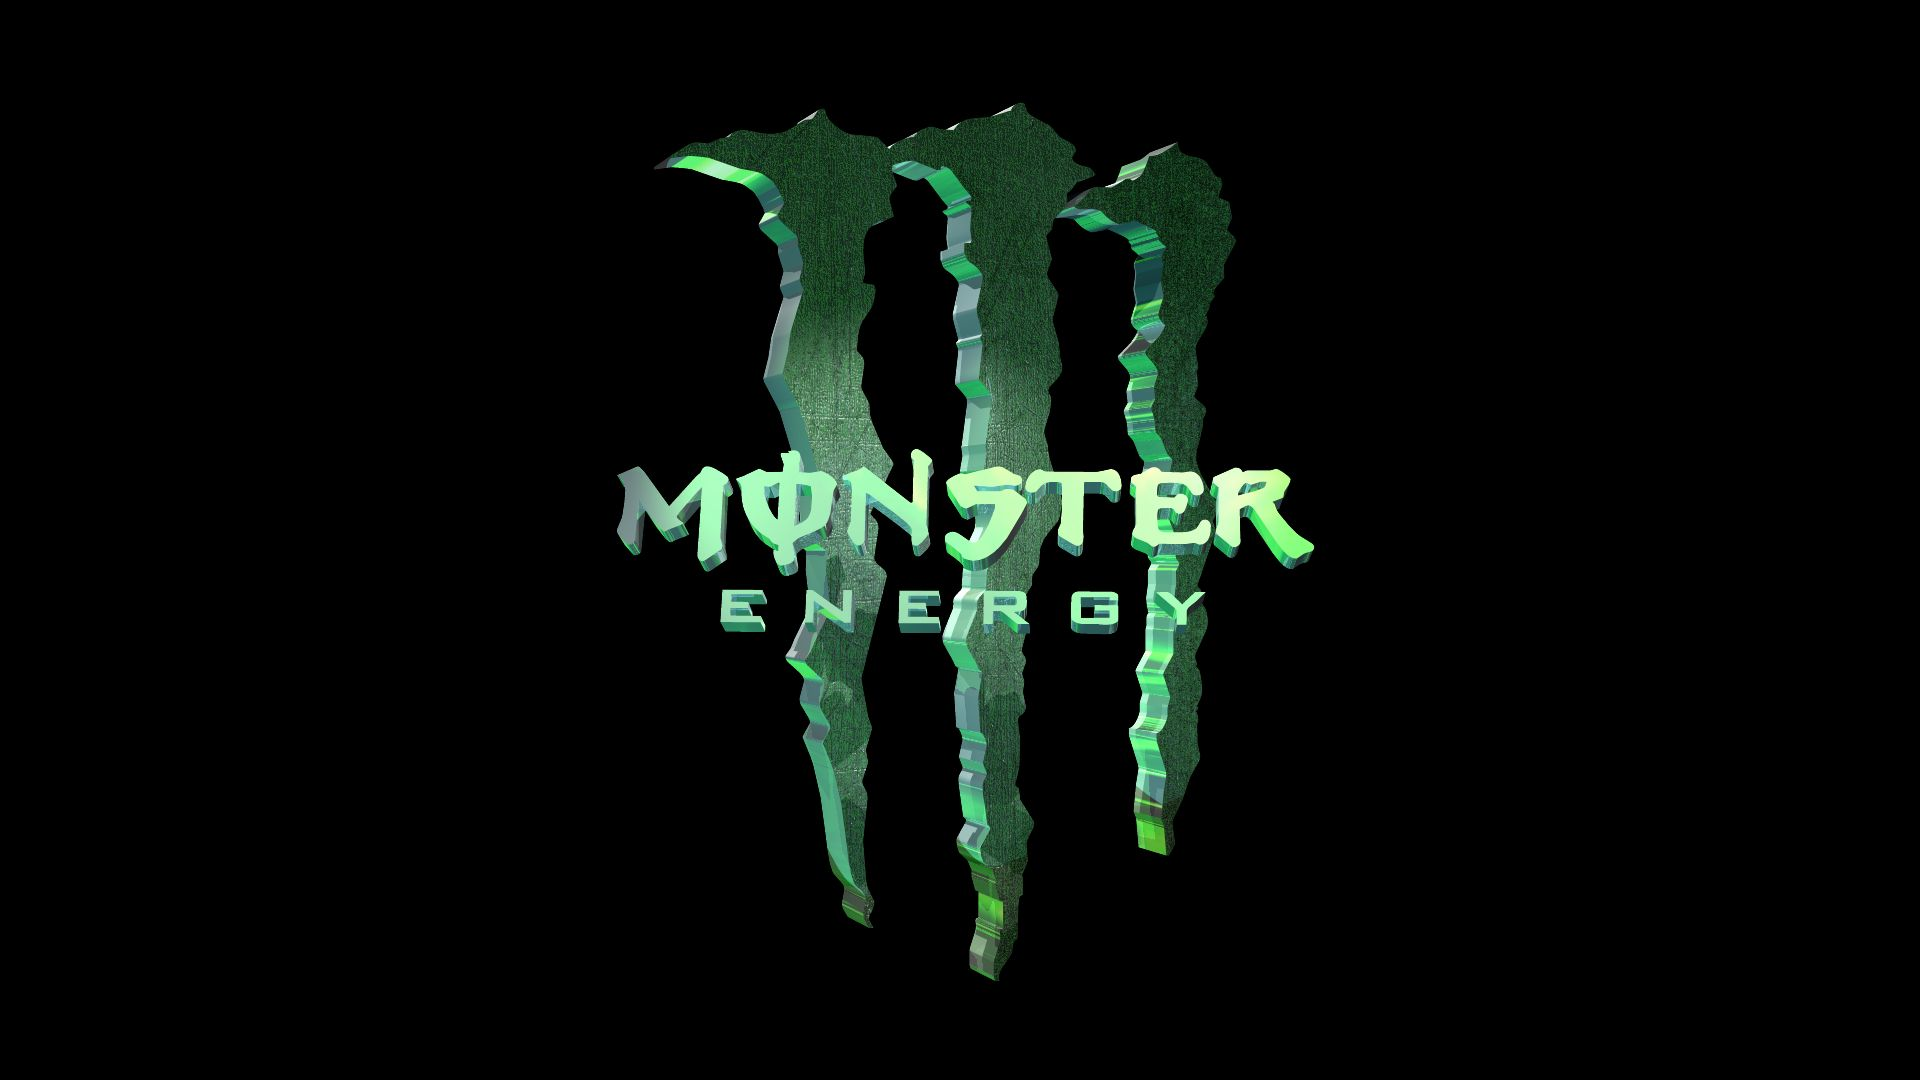 Amazing monster energy eyes high quality in hd wallpaper wallsev amazing monster energy eyes high quality in hd wallpaper wallsev 1920x1080 voltagebd Choice Image